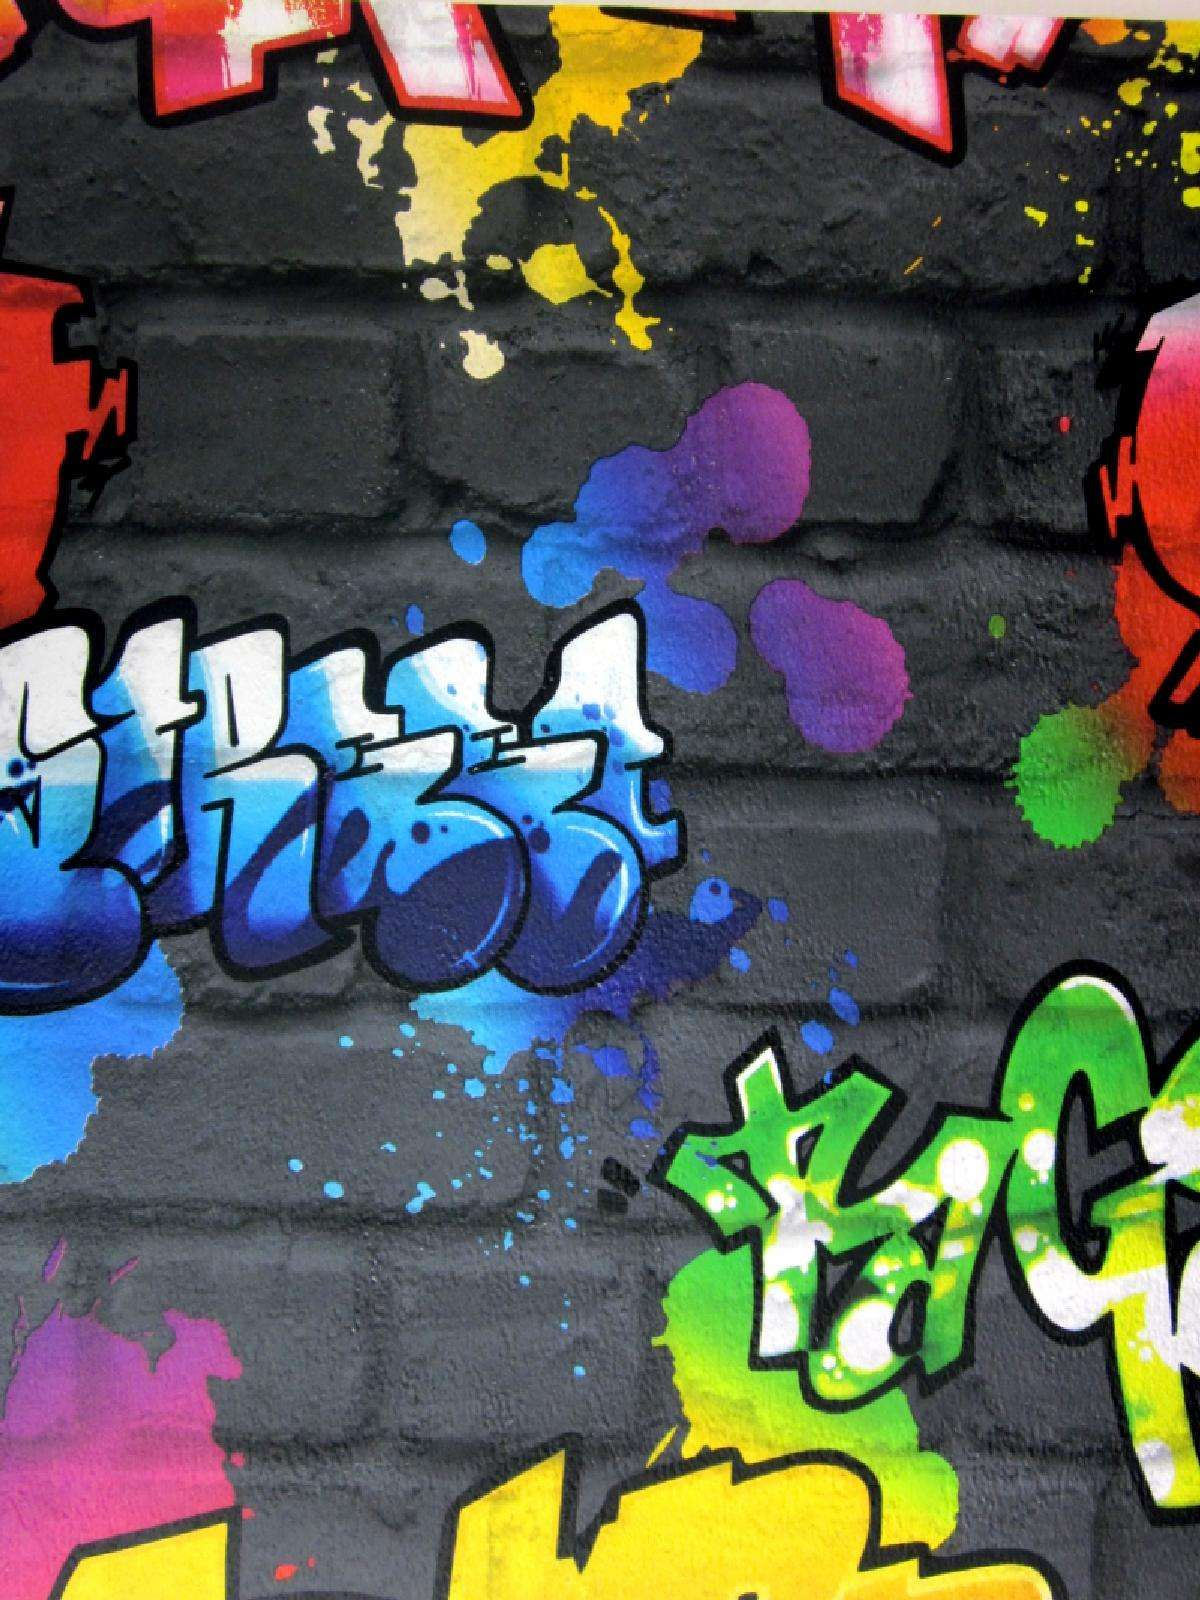 Graffiti art for your home - Cool Urban Graffiti Art For Your Walls Spray Painted Effect Luminous Graffiti Paint In Yellow Blue Red And Green Which Have Been Realistically Sprayed